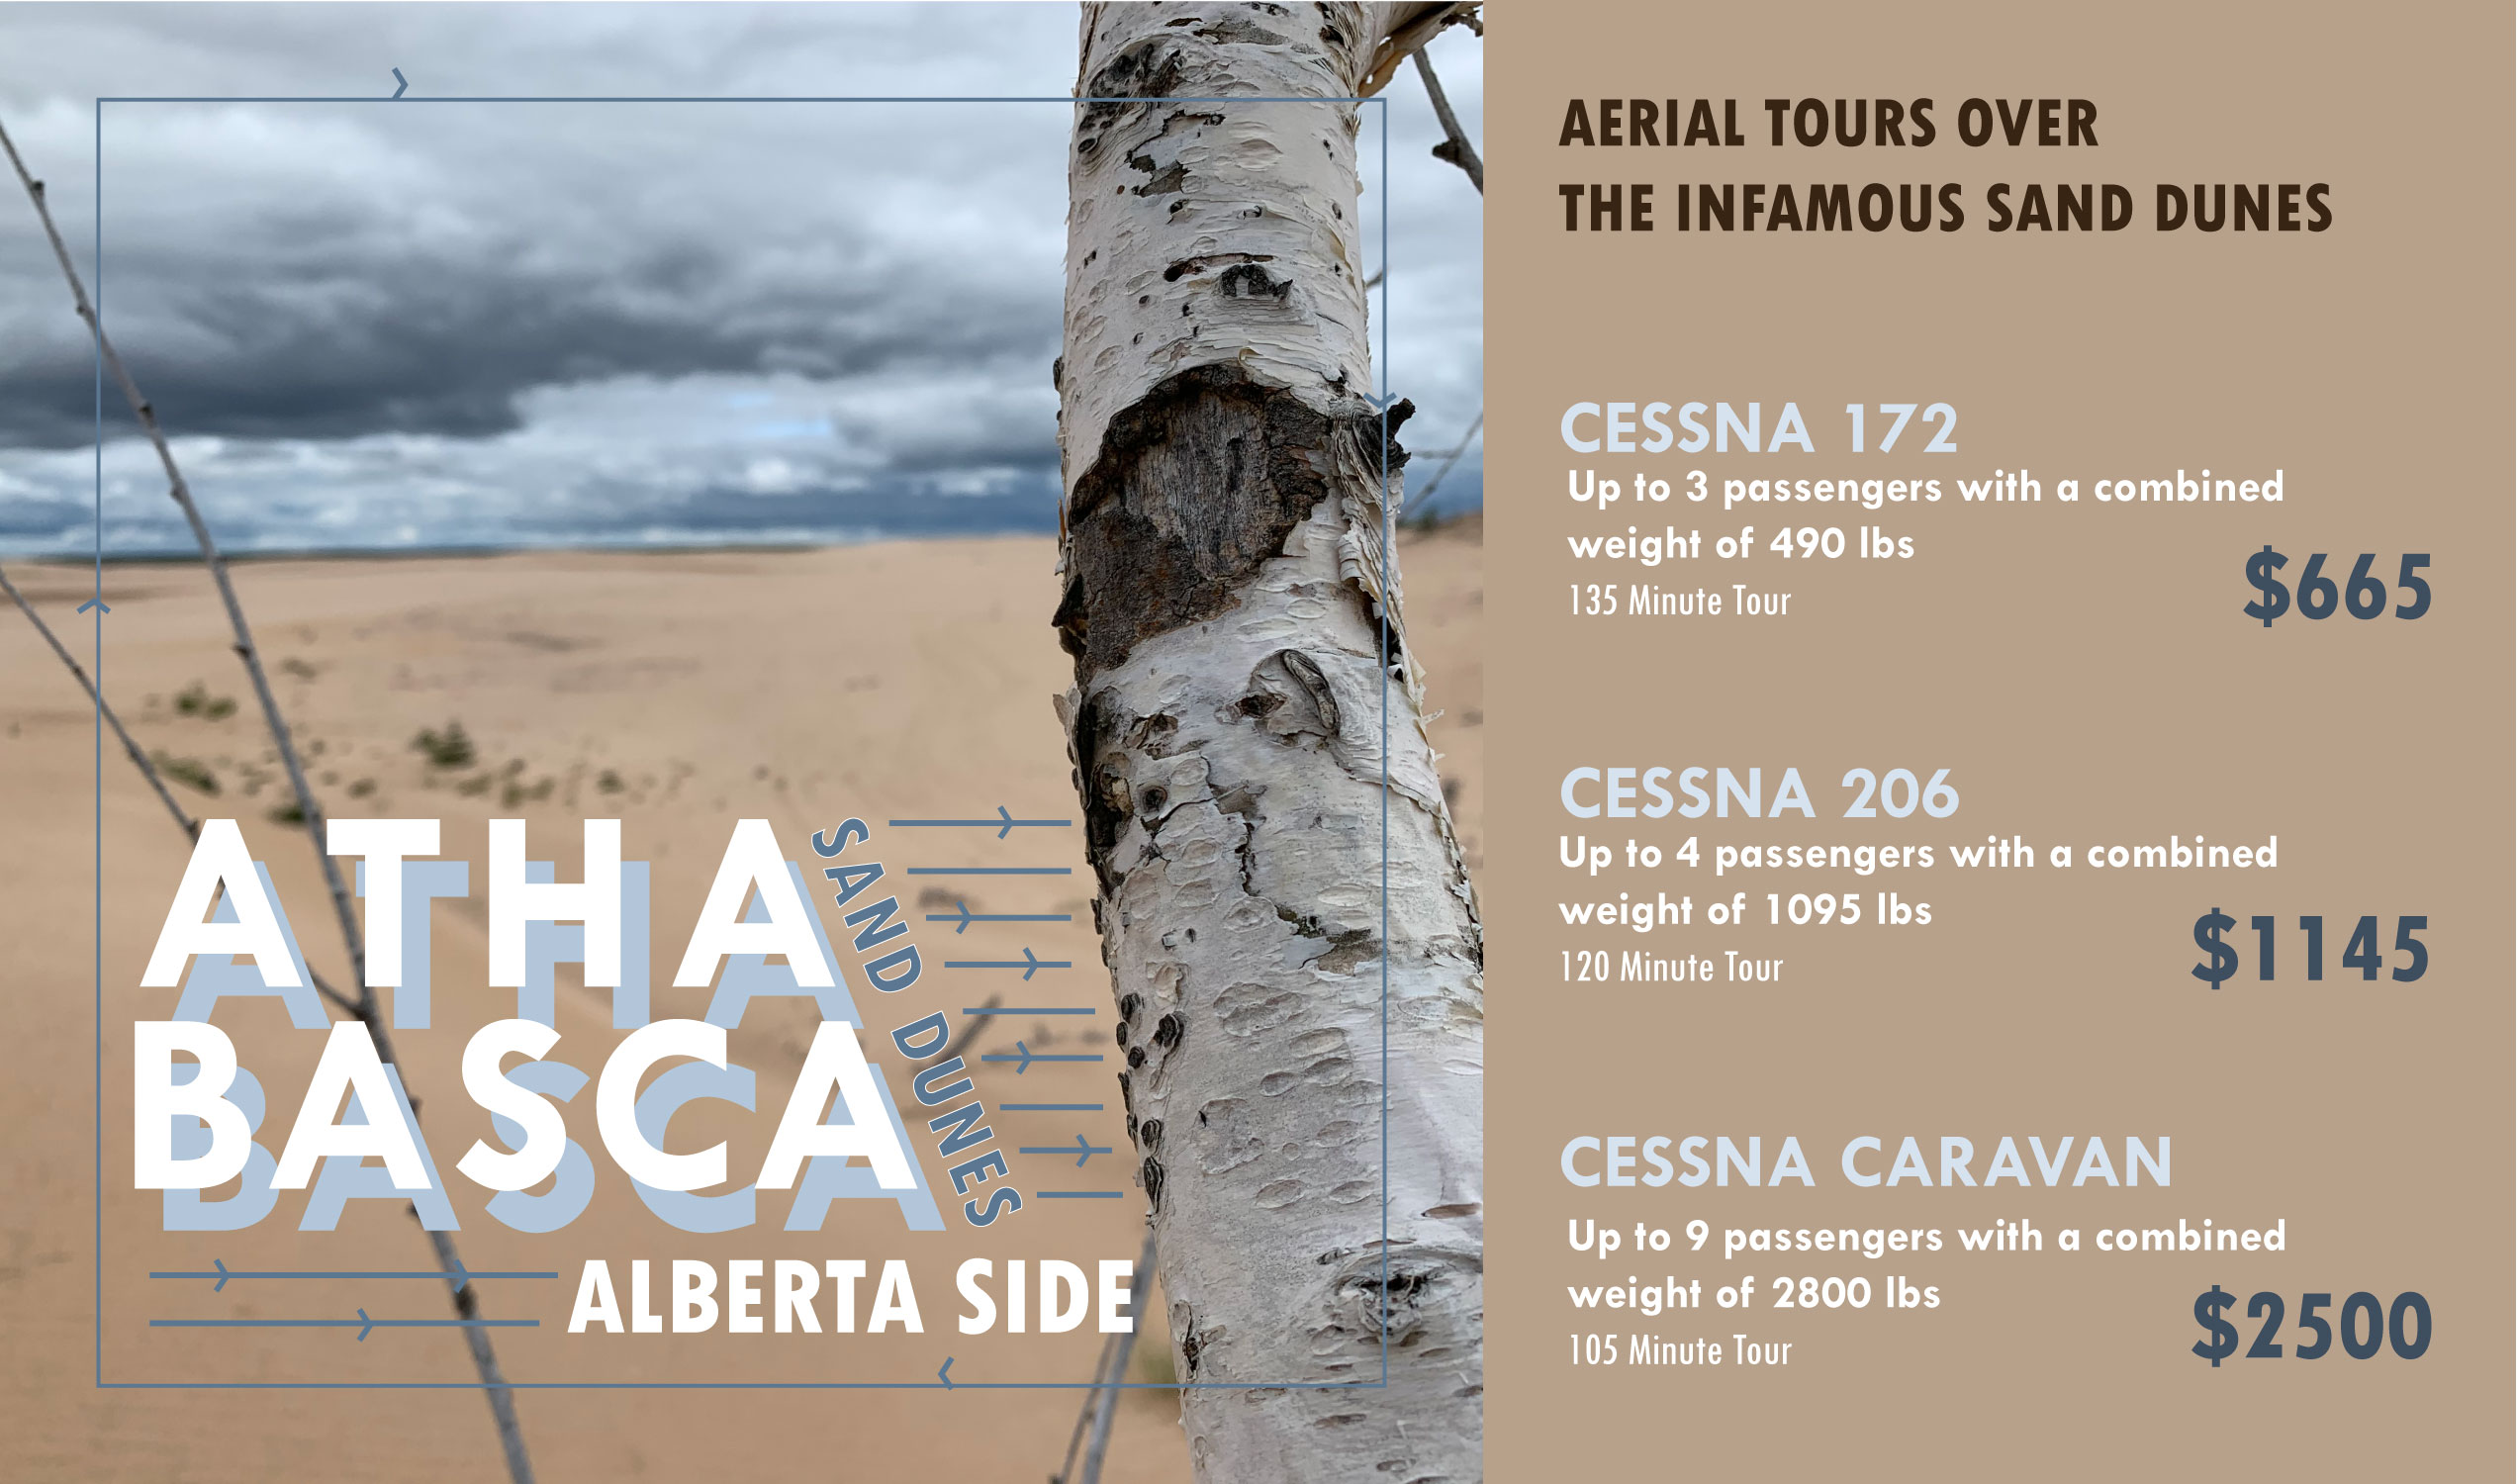 Athabasca Sand Dunes Aerial Tour prices